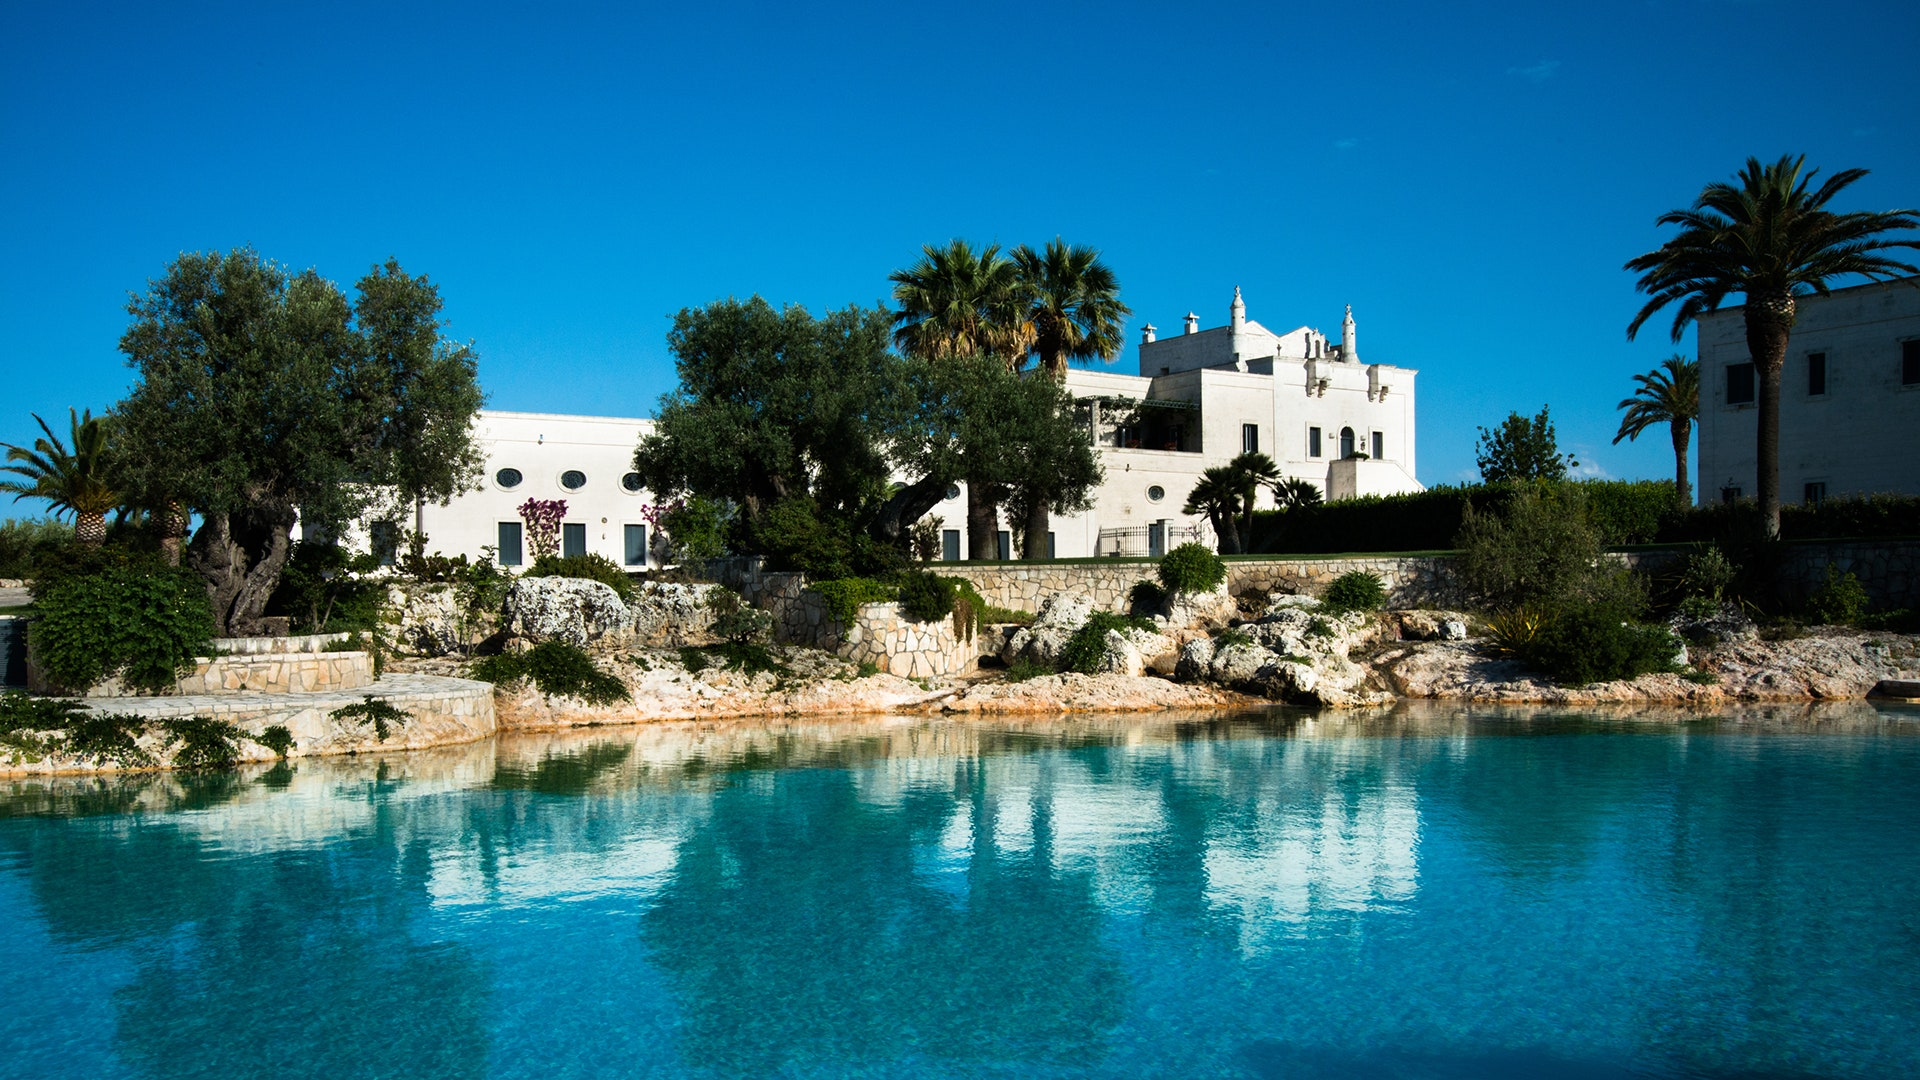 Puglia travel guide: Where to eat, stay and drink